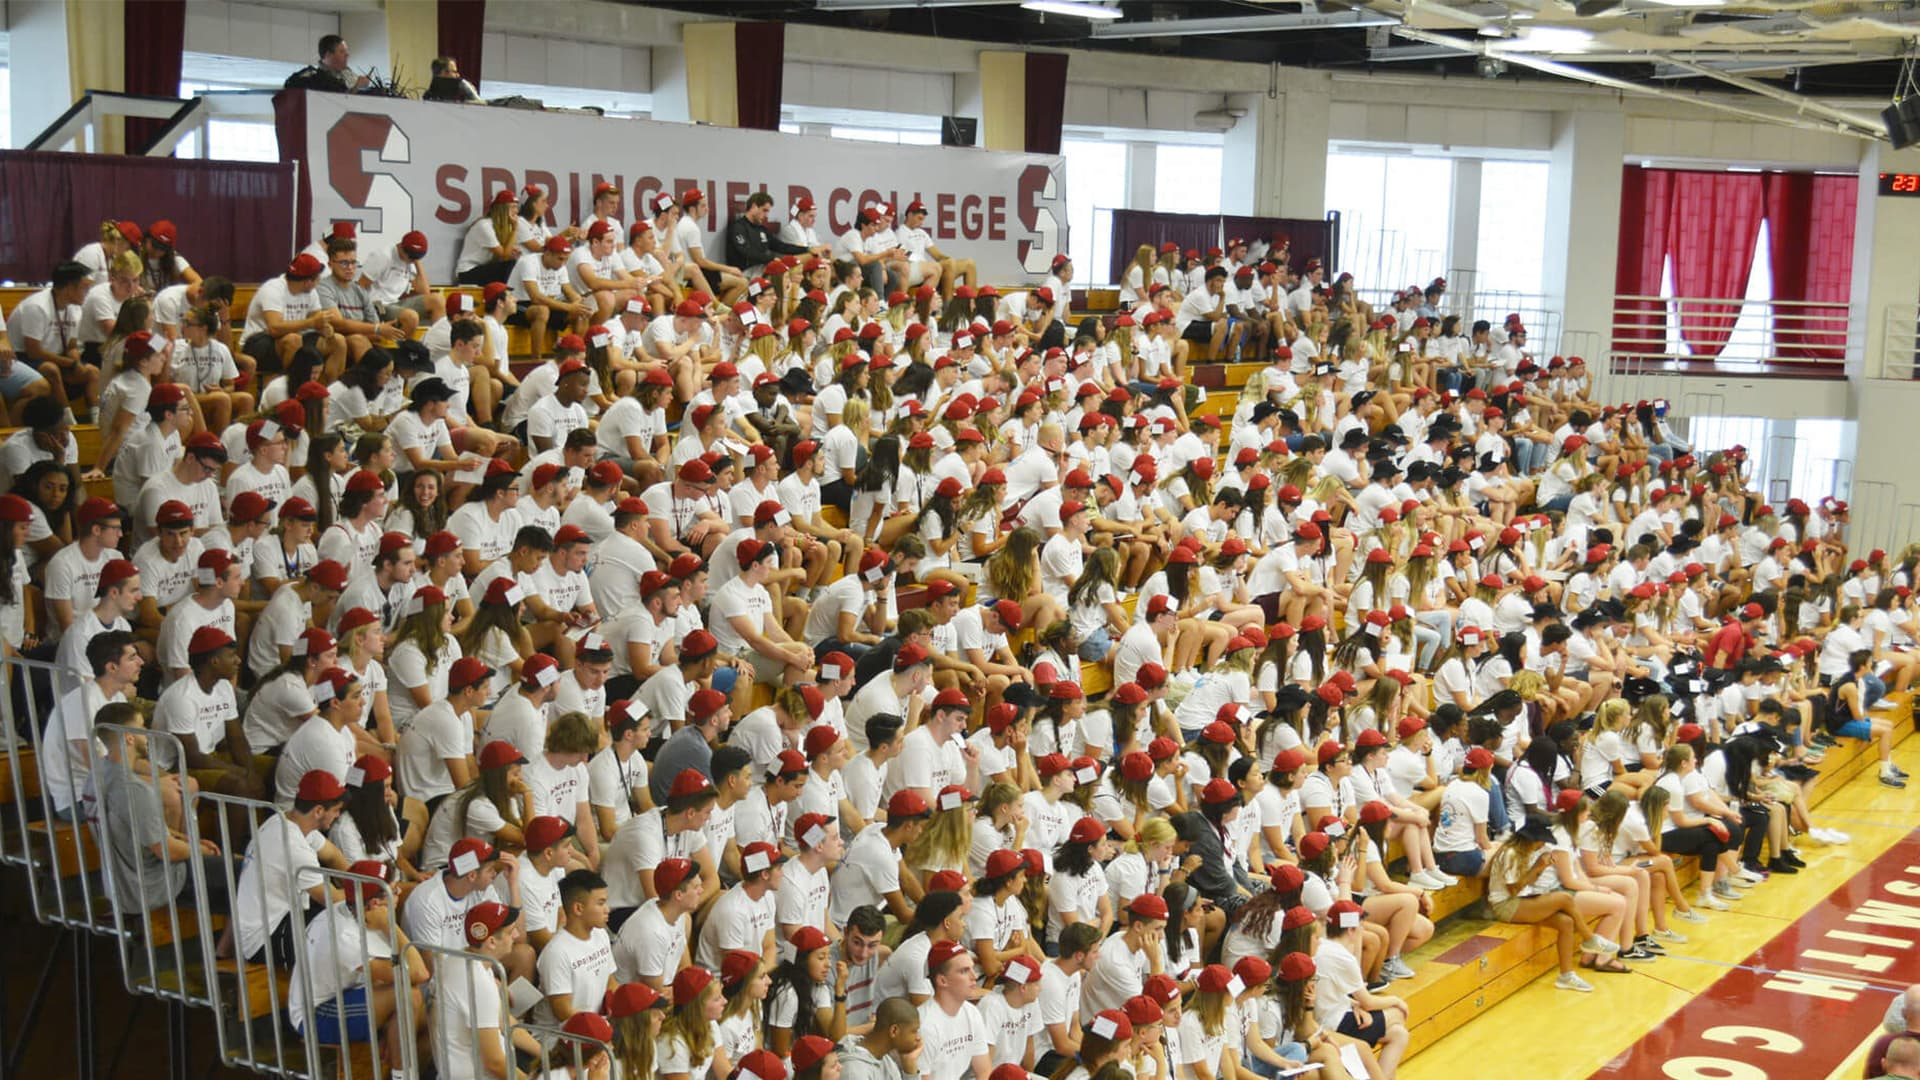 New students sit in the bleachers wearing beanies for their convocation.